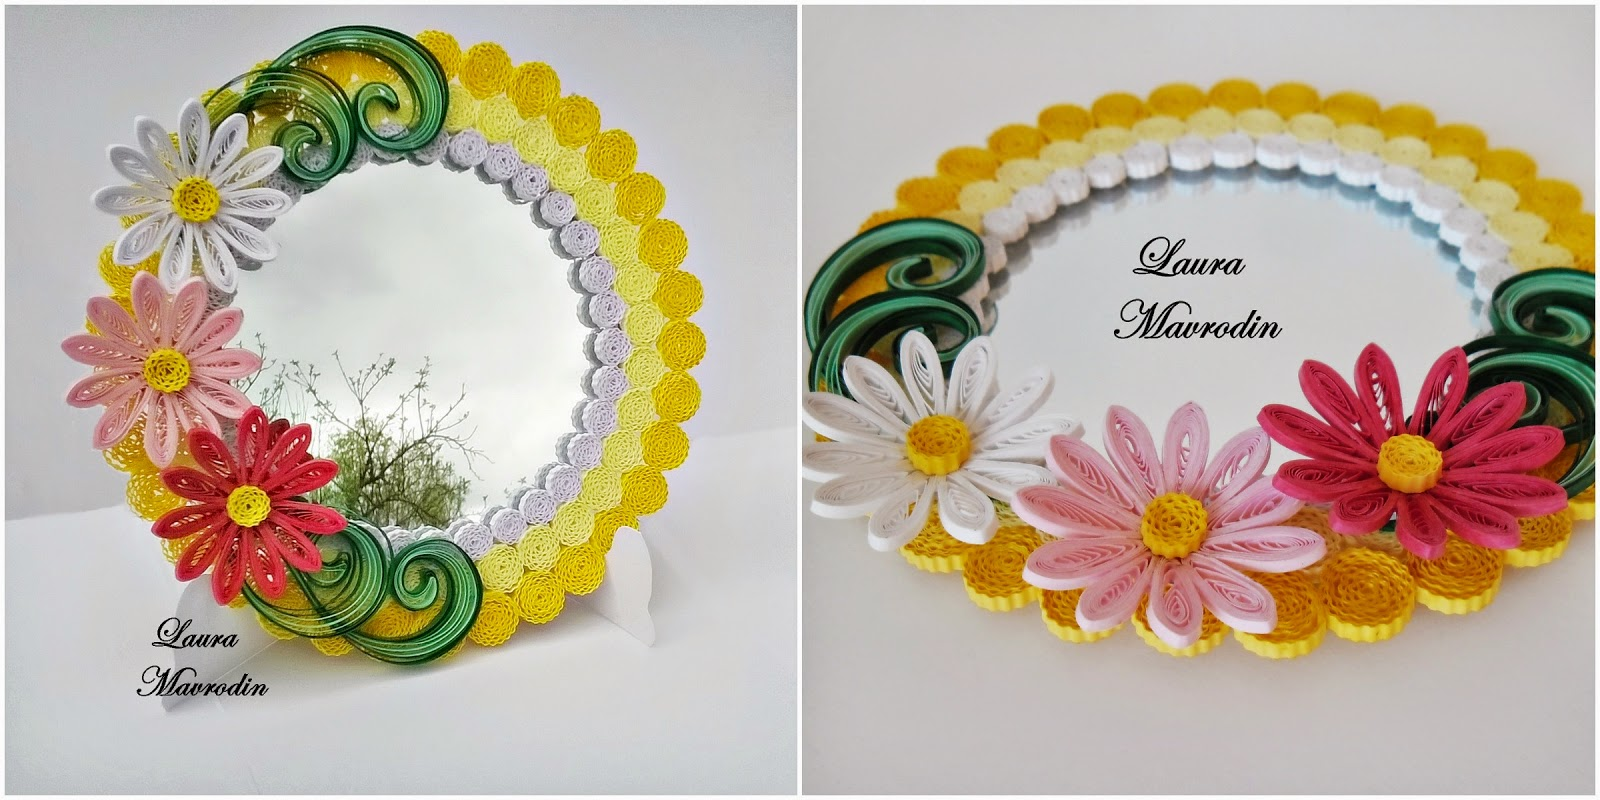 3D Quilling on Pinterest | Quilling, Paper Quilling and Quilling 3d